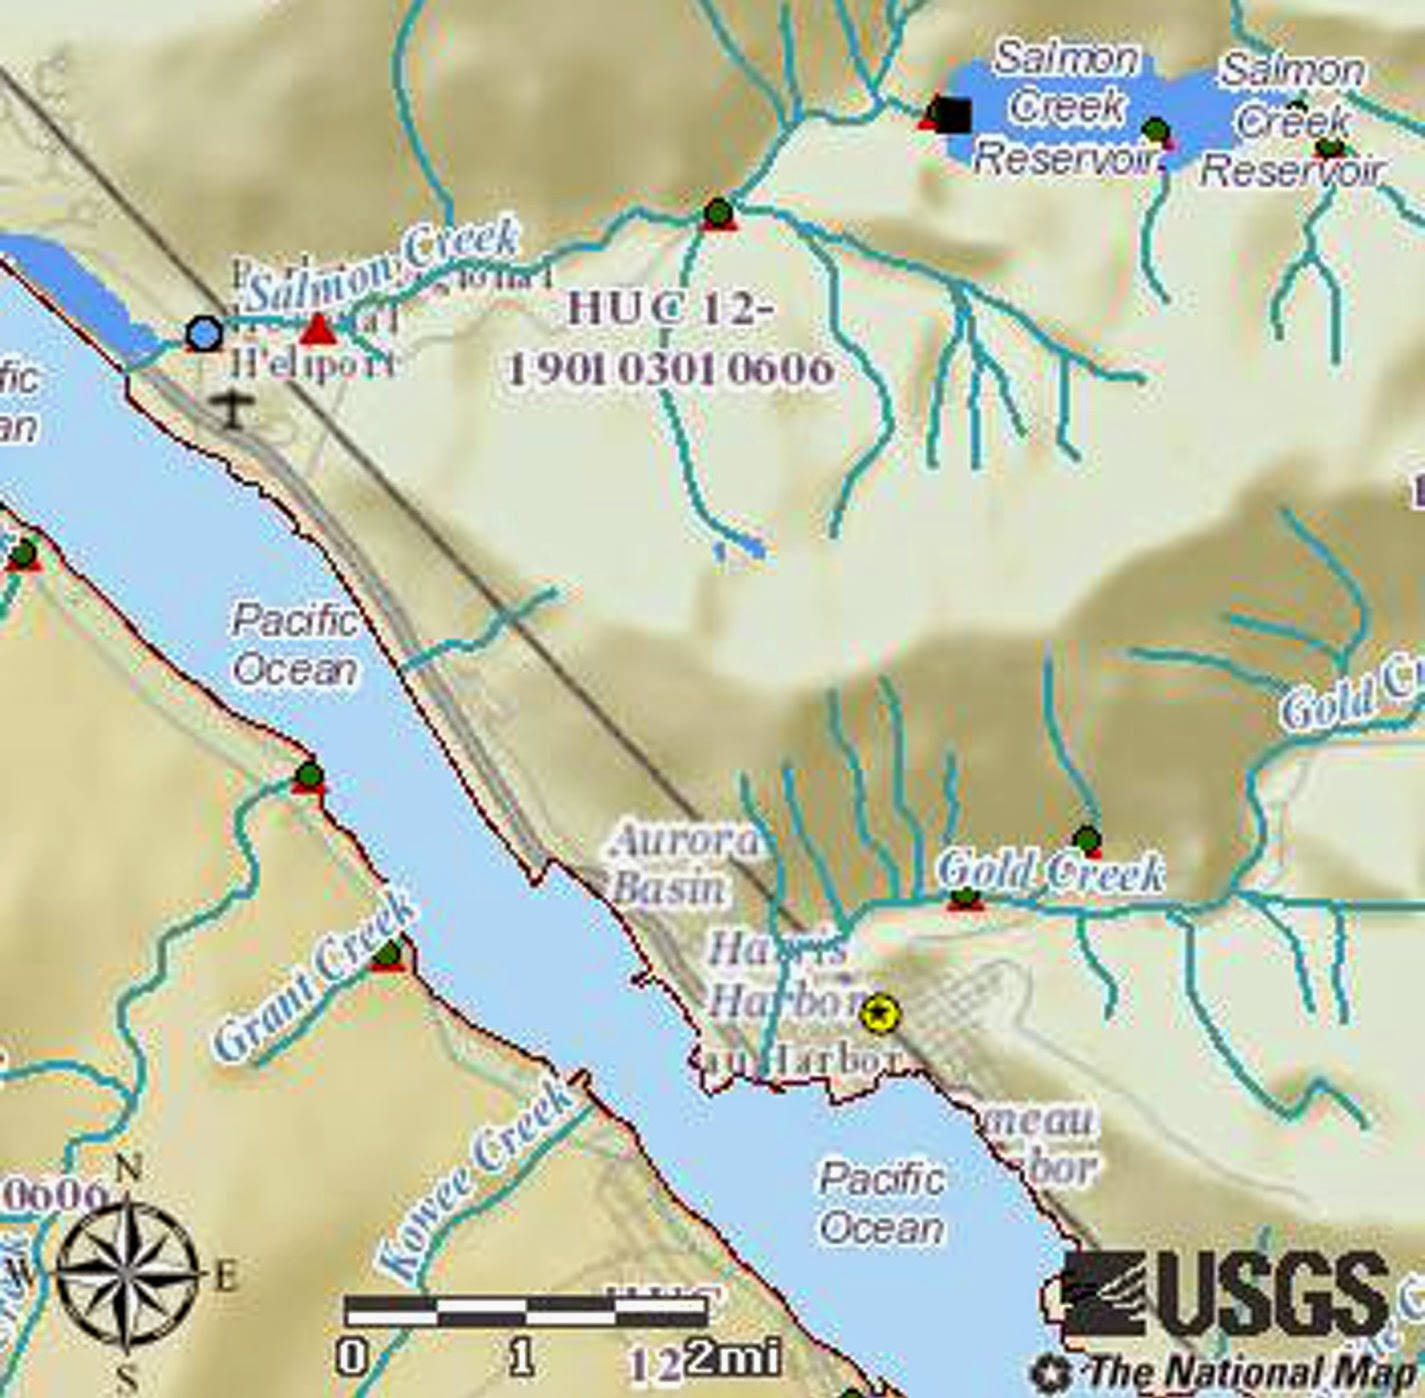 map showing area from juneau to salmon creek